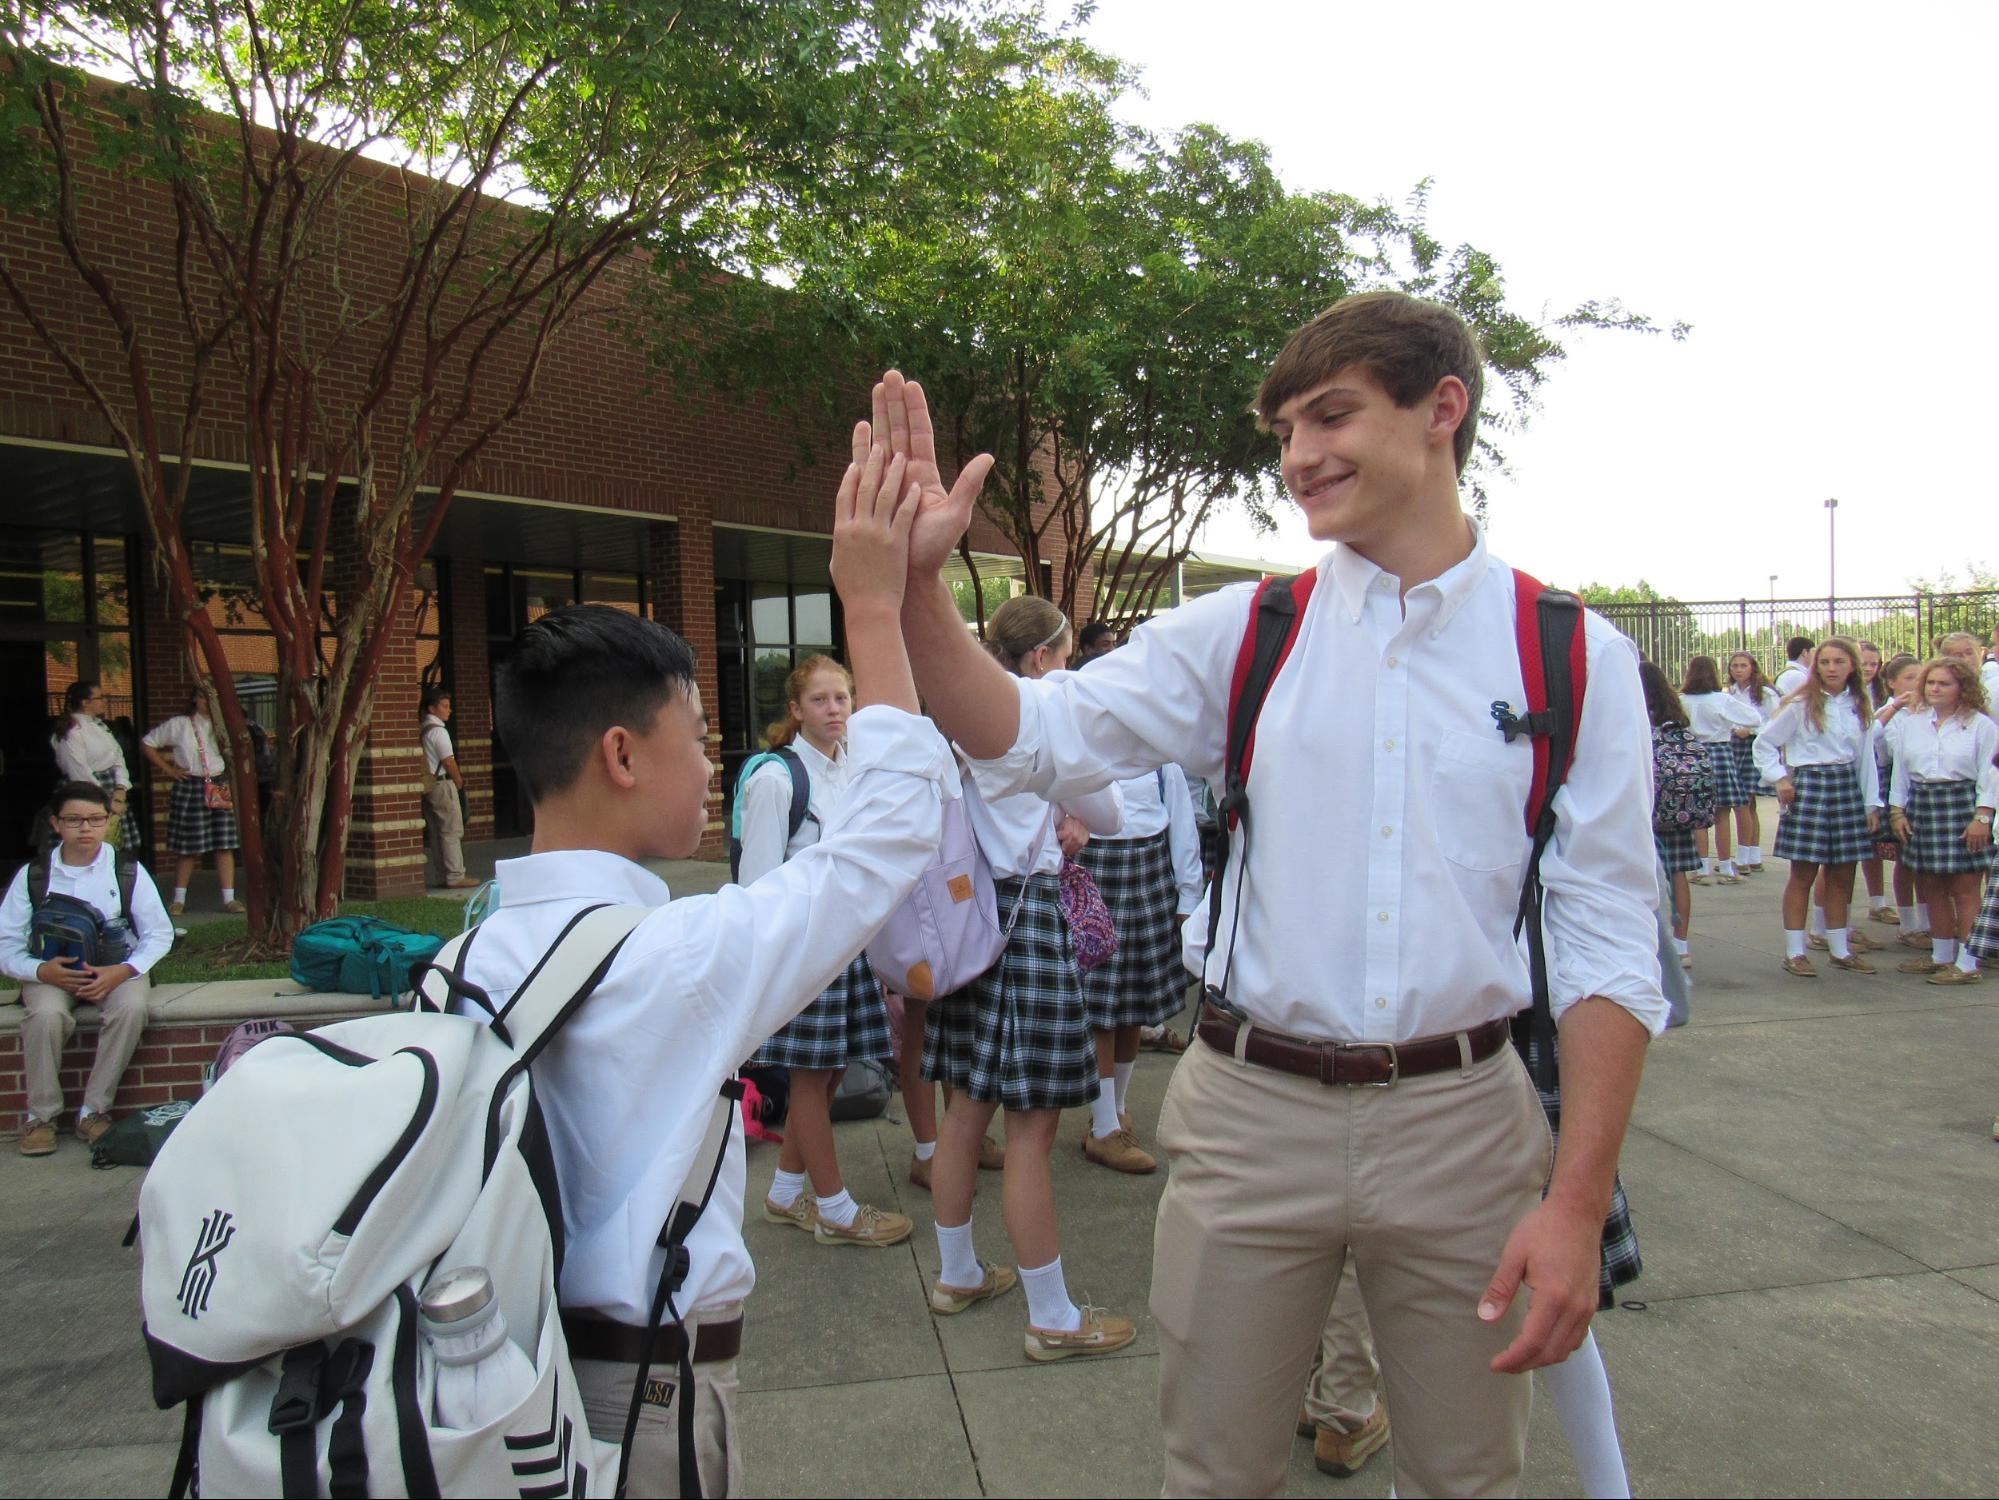 Big Buddies breakfast held to welcome new seventh graders